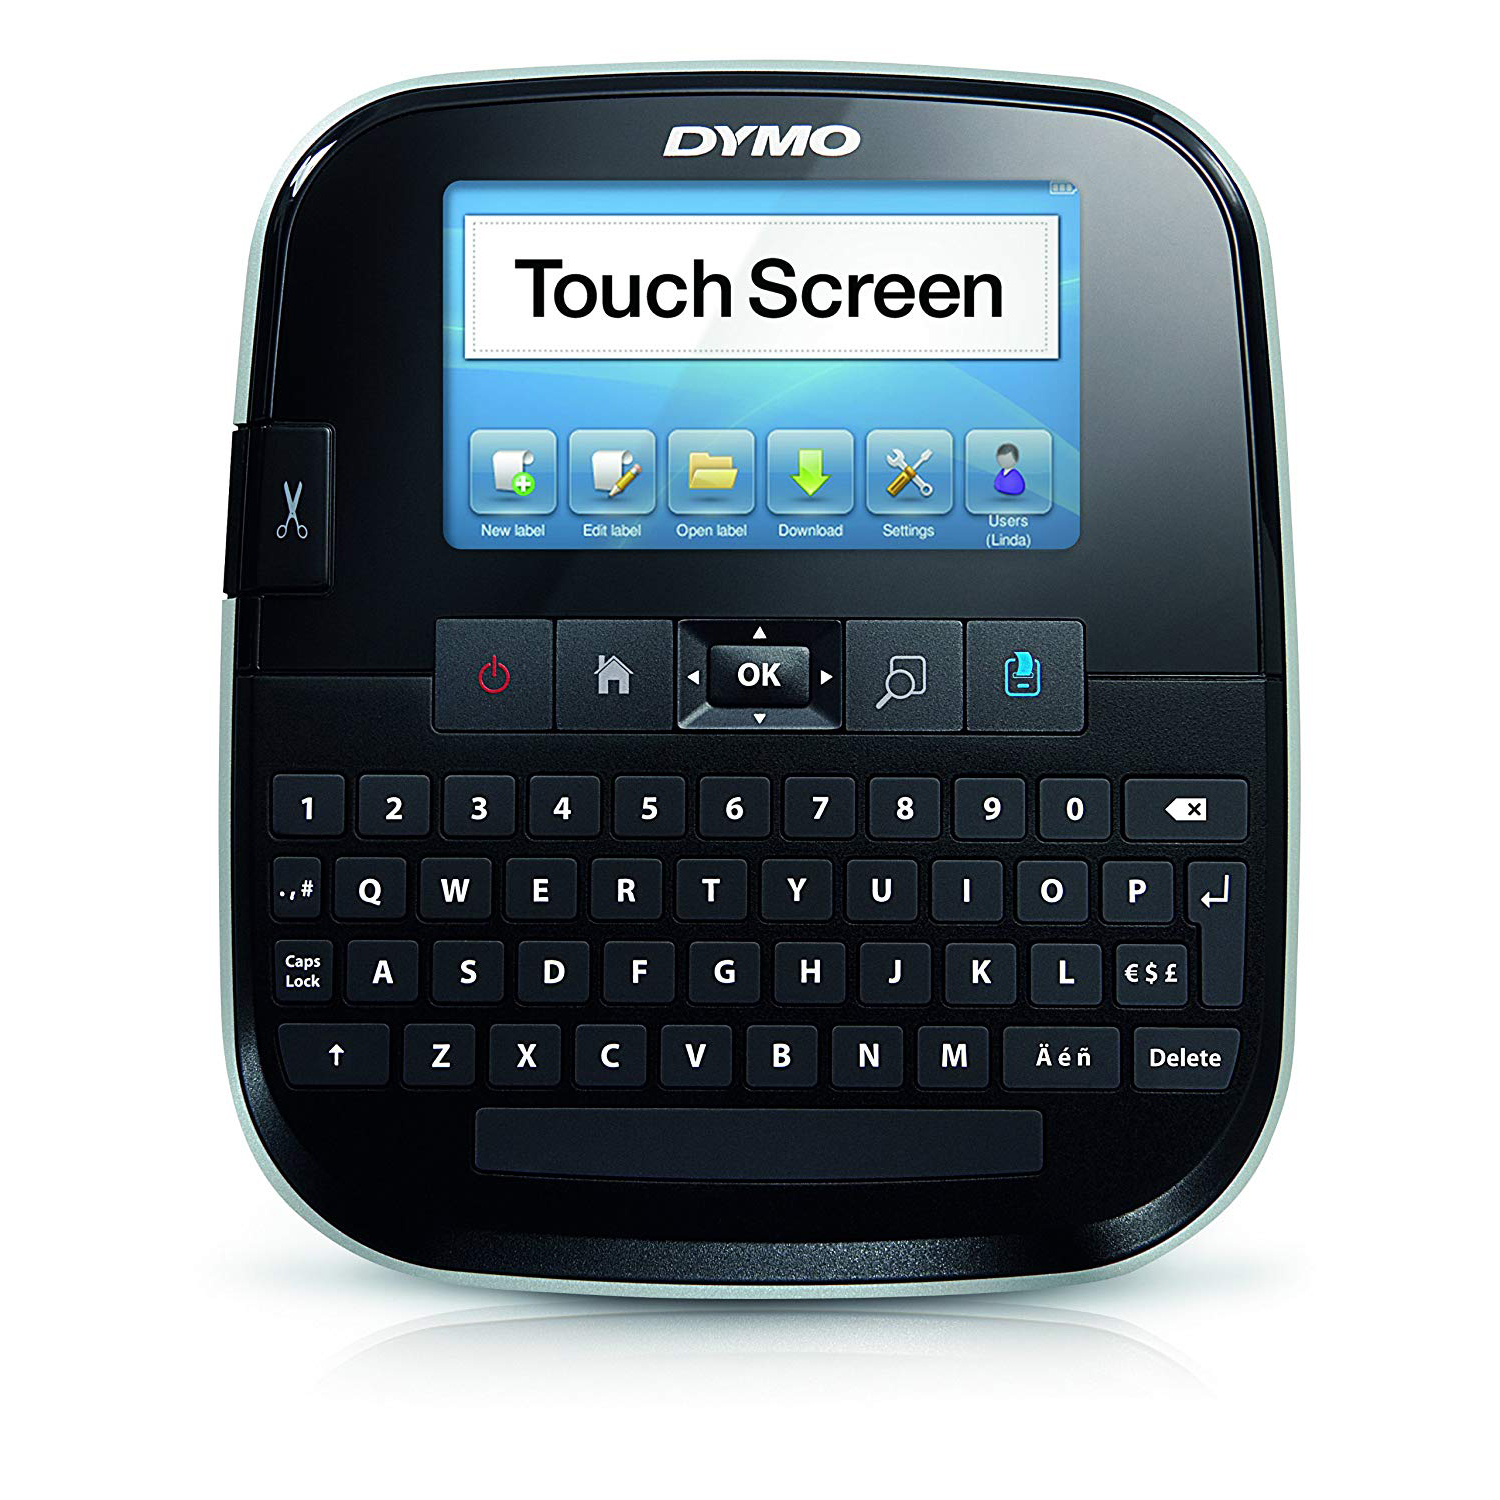 Dymo S0946420 LabelManager 500TS Touch Screen Handheld Label Maker with Qwerty Keyboard (D1 Tape)